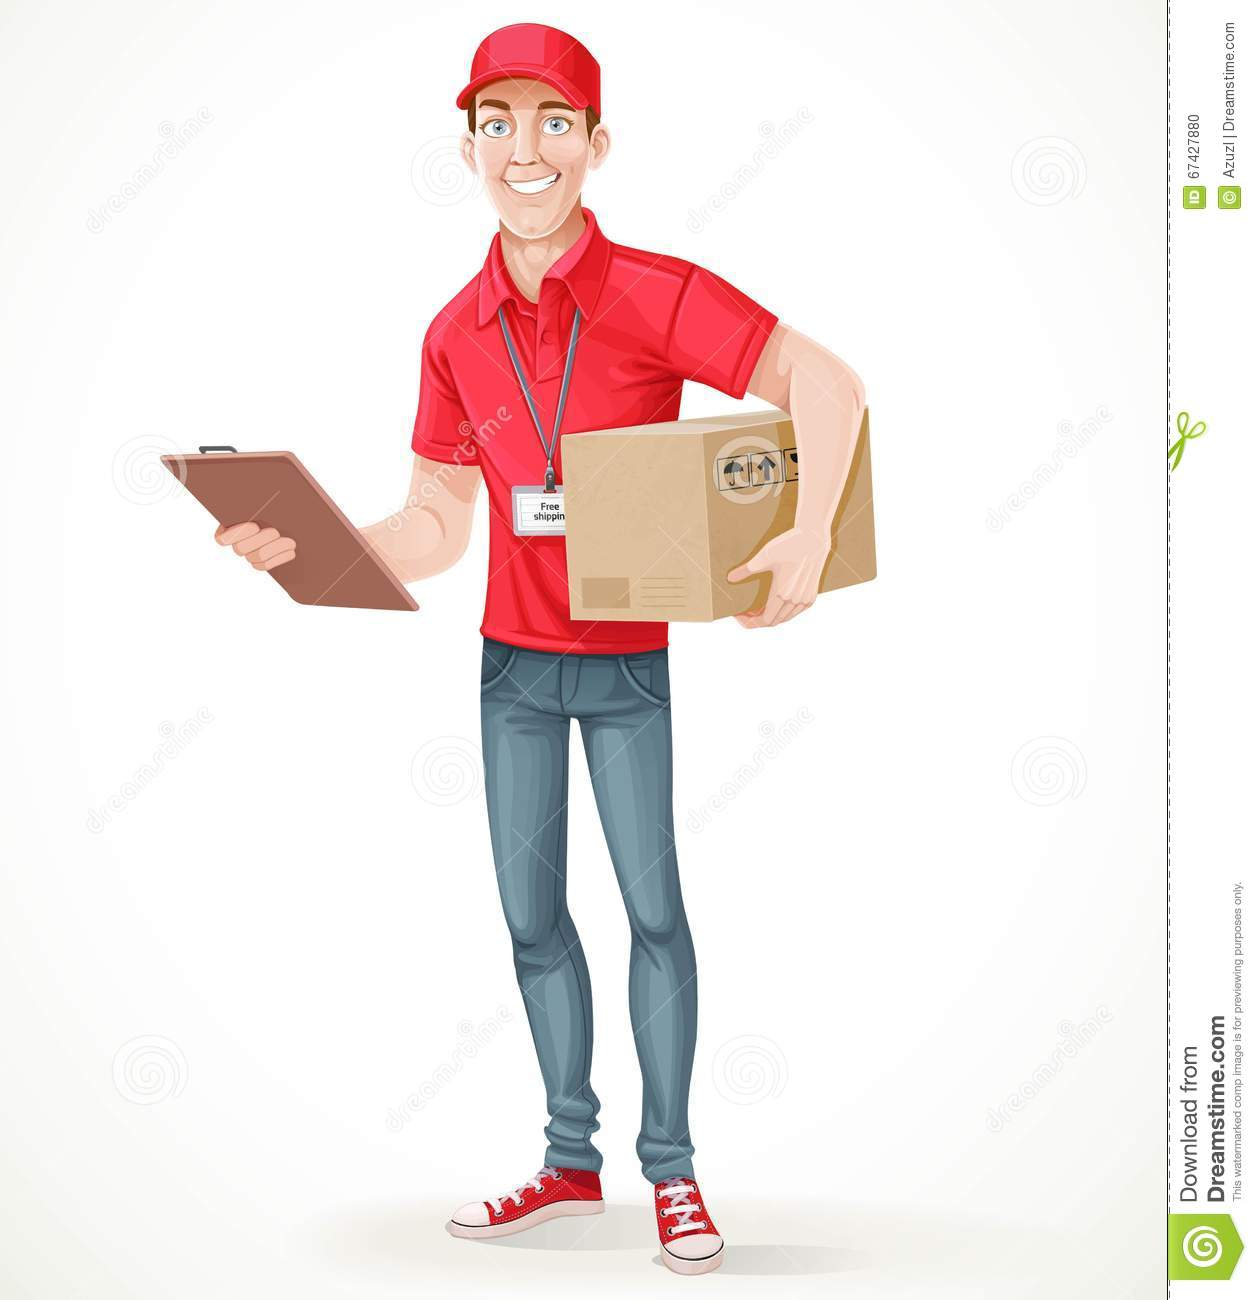 Young Man Courier Delivery Services Of Holding A Large Box. East Carolina University Psychology. How To Become A Vet Assistant. How To Remove Smoke Damage What Is A Thrombus. Free Car Insurance Quotes State Farm. Carpet Cleaning West Covina Vinegar For Acne. Carpet Cleaning Bakersfield Ca. Compare Car Insurance Rates Side By Side. Colleges That Offer Elementary Education